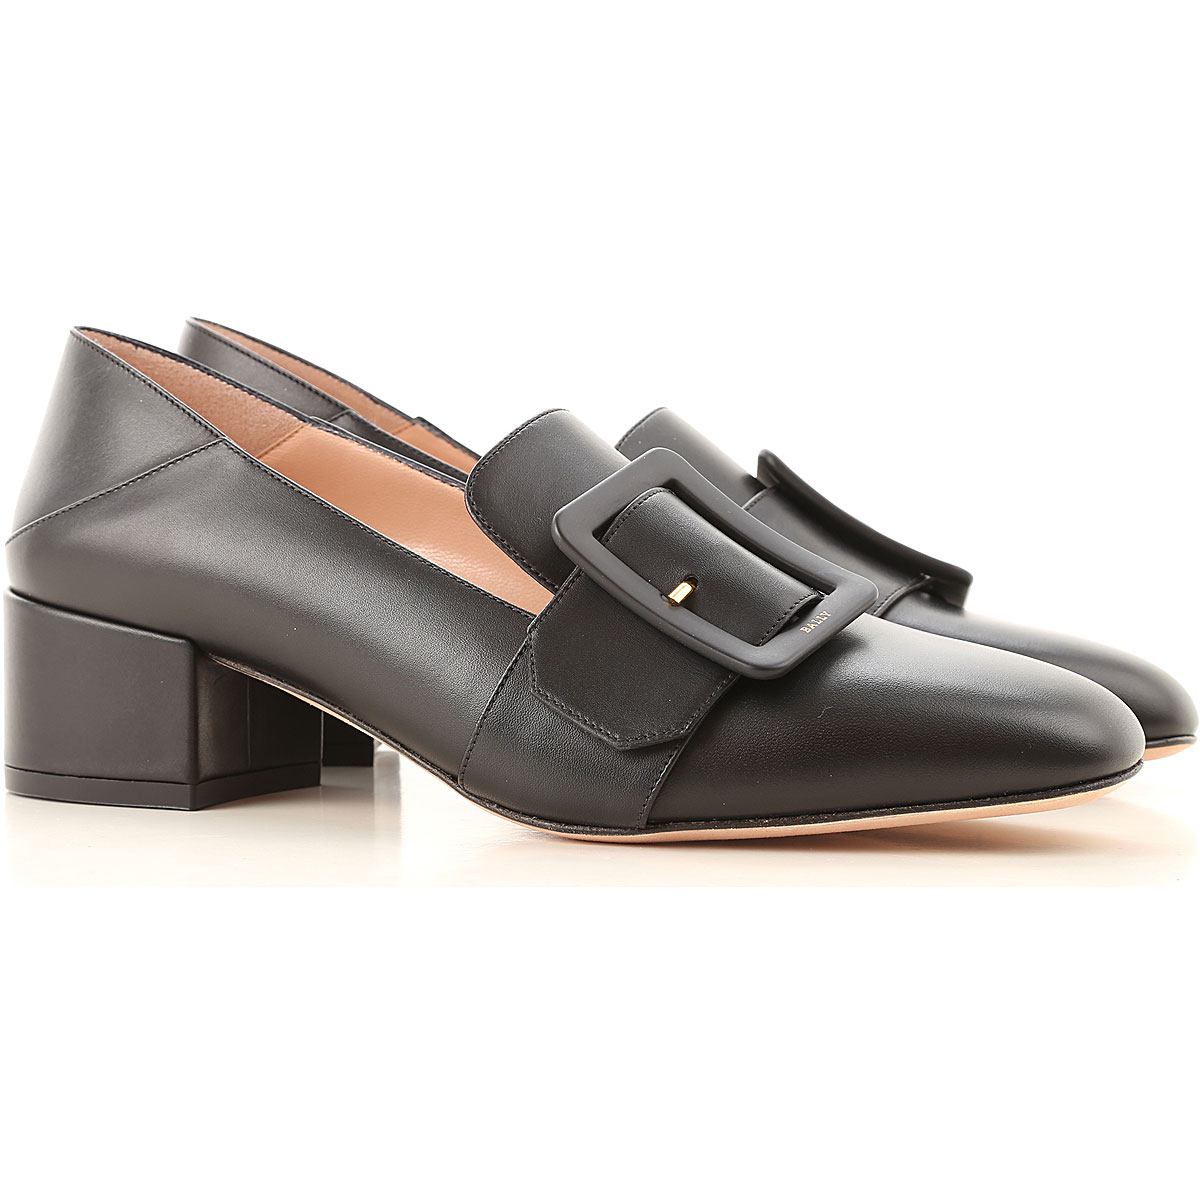 Bally Pumps & High Heels for Women On Sale, Black, Leather, 2019, 10 7 8 9